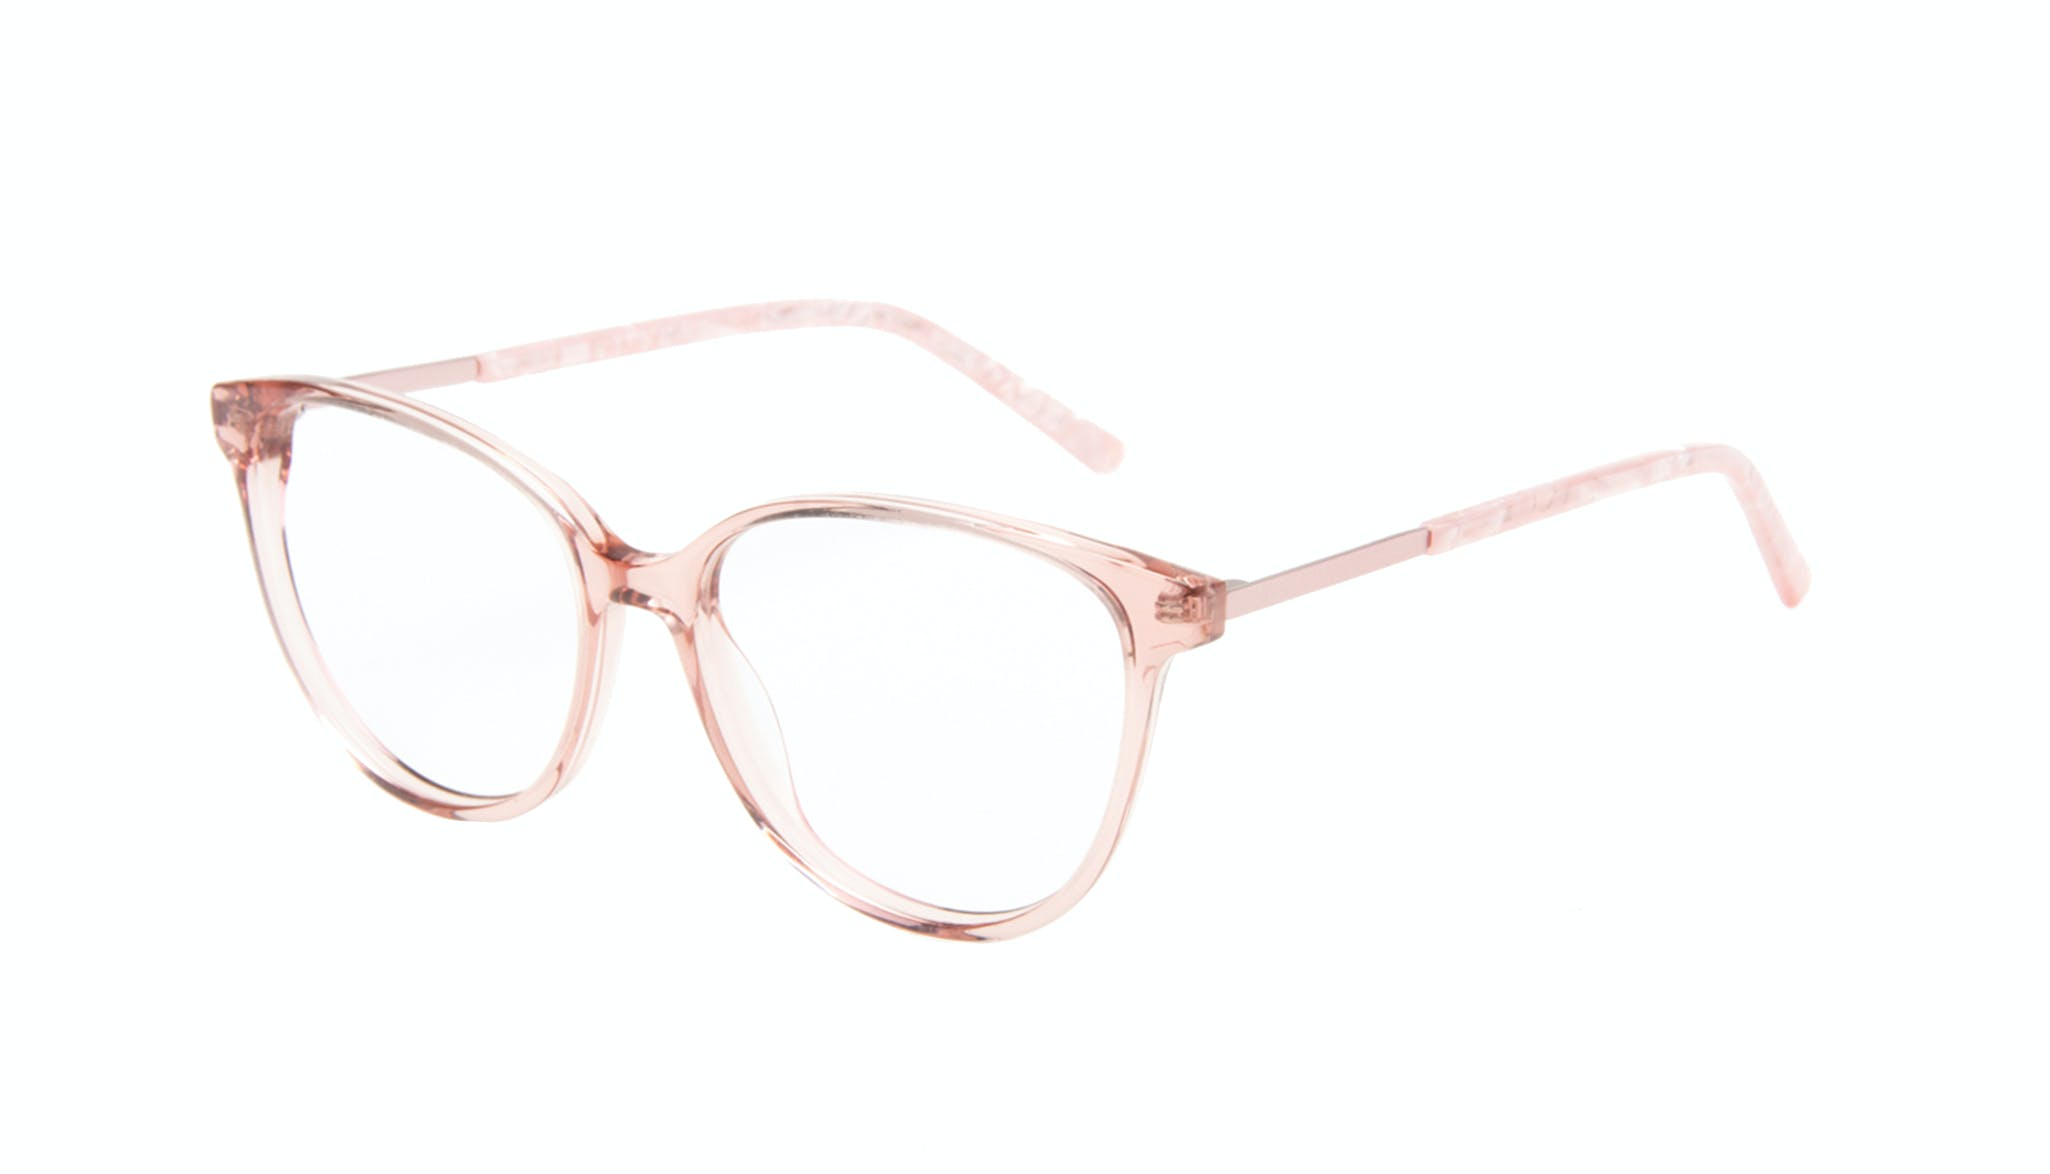 Affordable Fashion Glasses Round Eyeglasses Women Imagine II Rose Marble Tilt